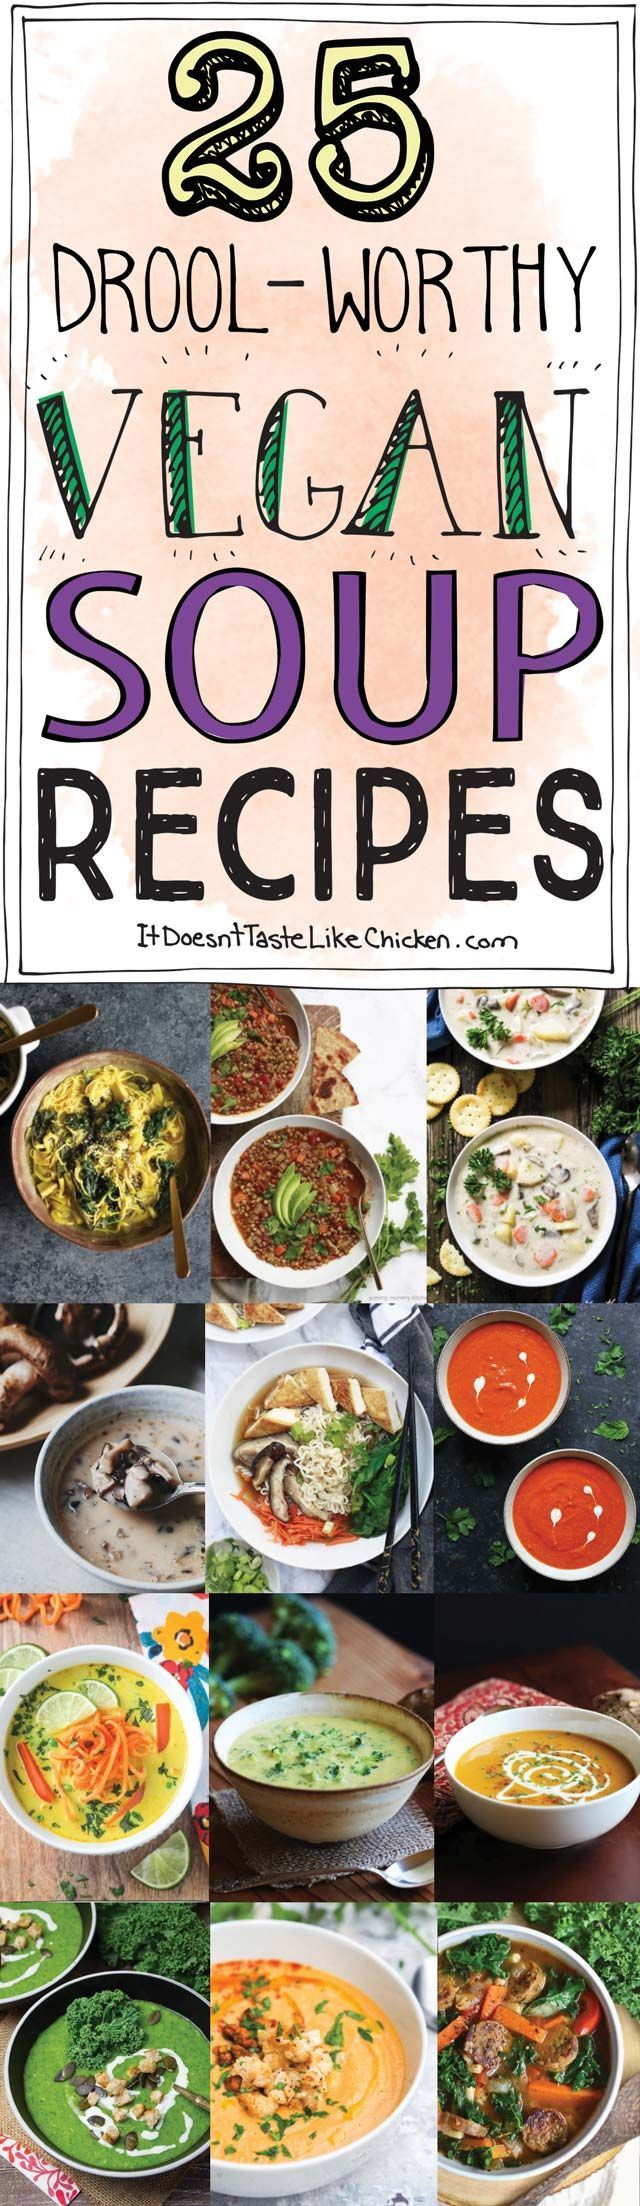 25 Drool-Worthy Vegan Soup Recipes! Creamy, noodle-y, hearty, and spicy soups to warm you from the inside out. Vegan, dairy-free, vegetarian. #itdoesnttaste